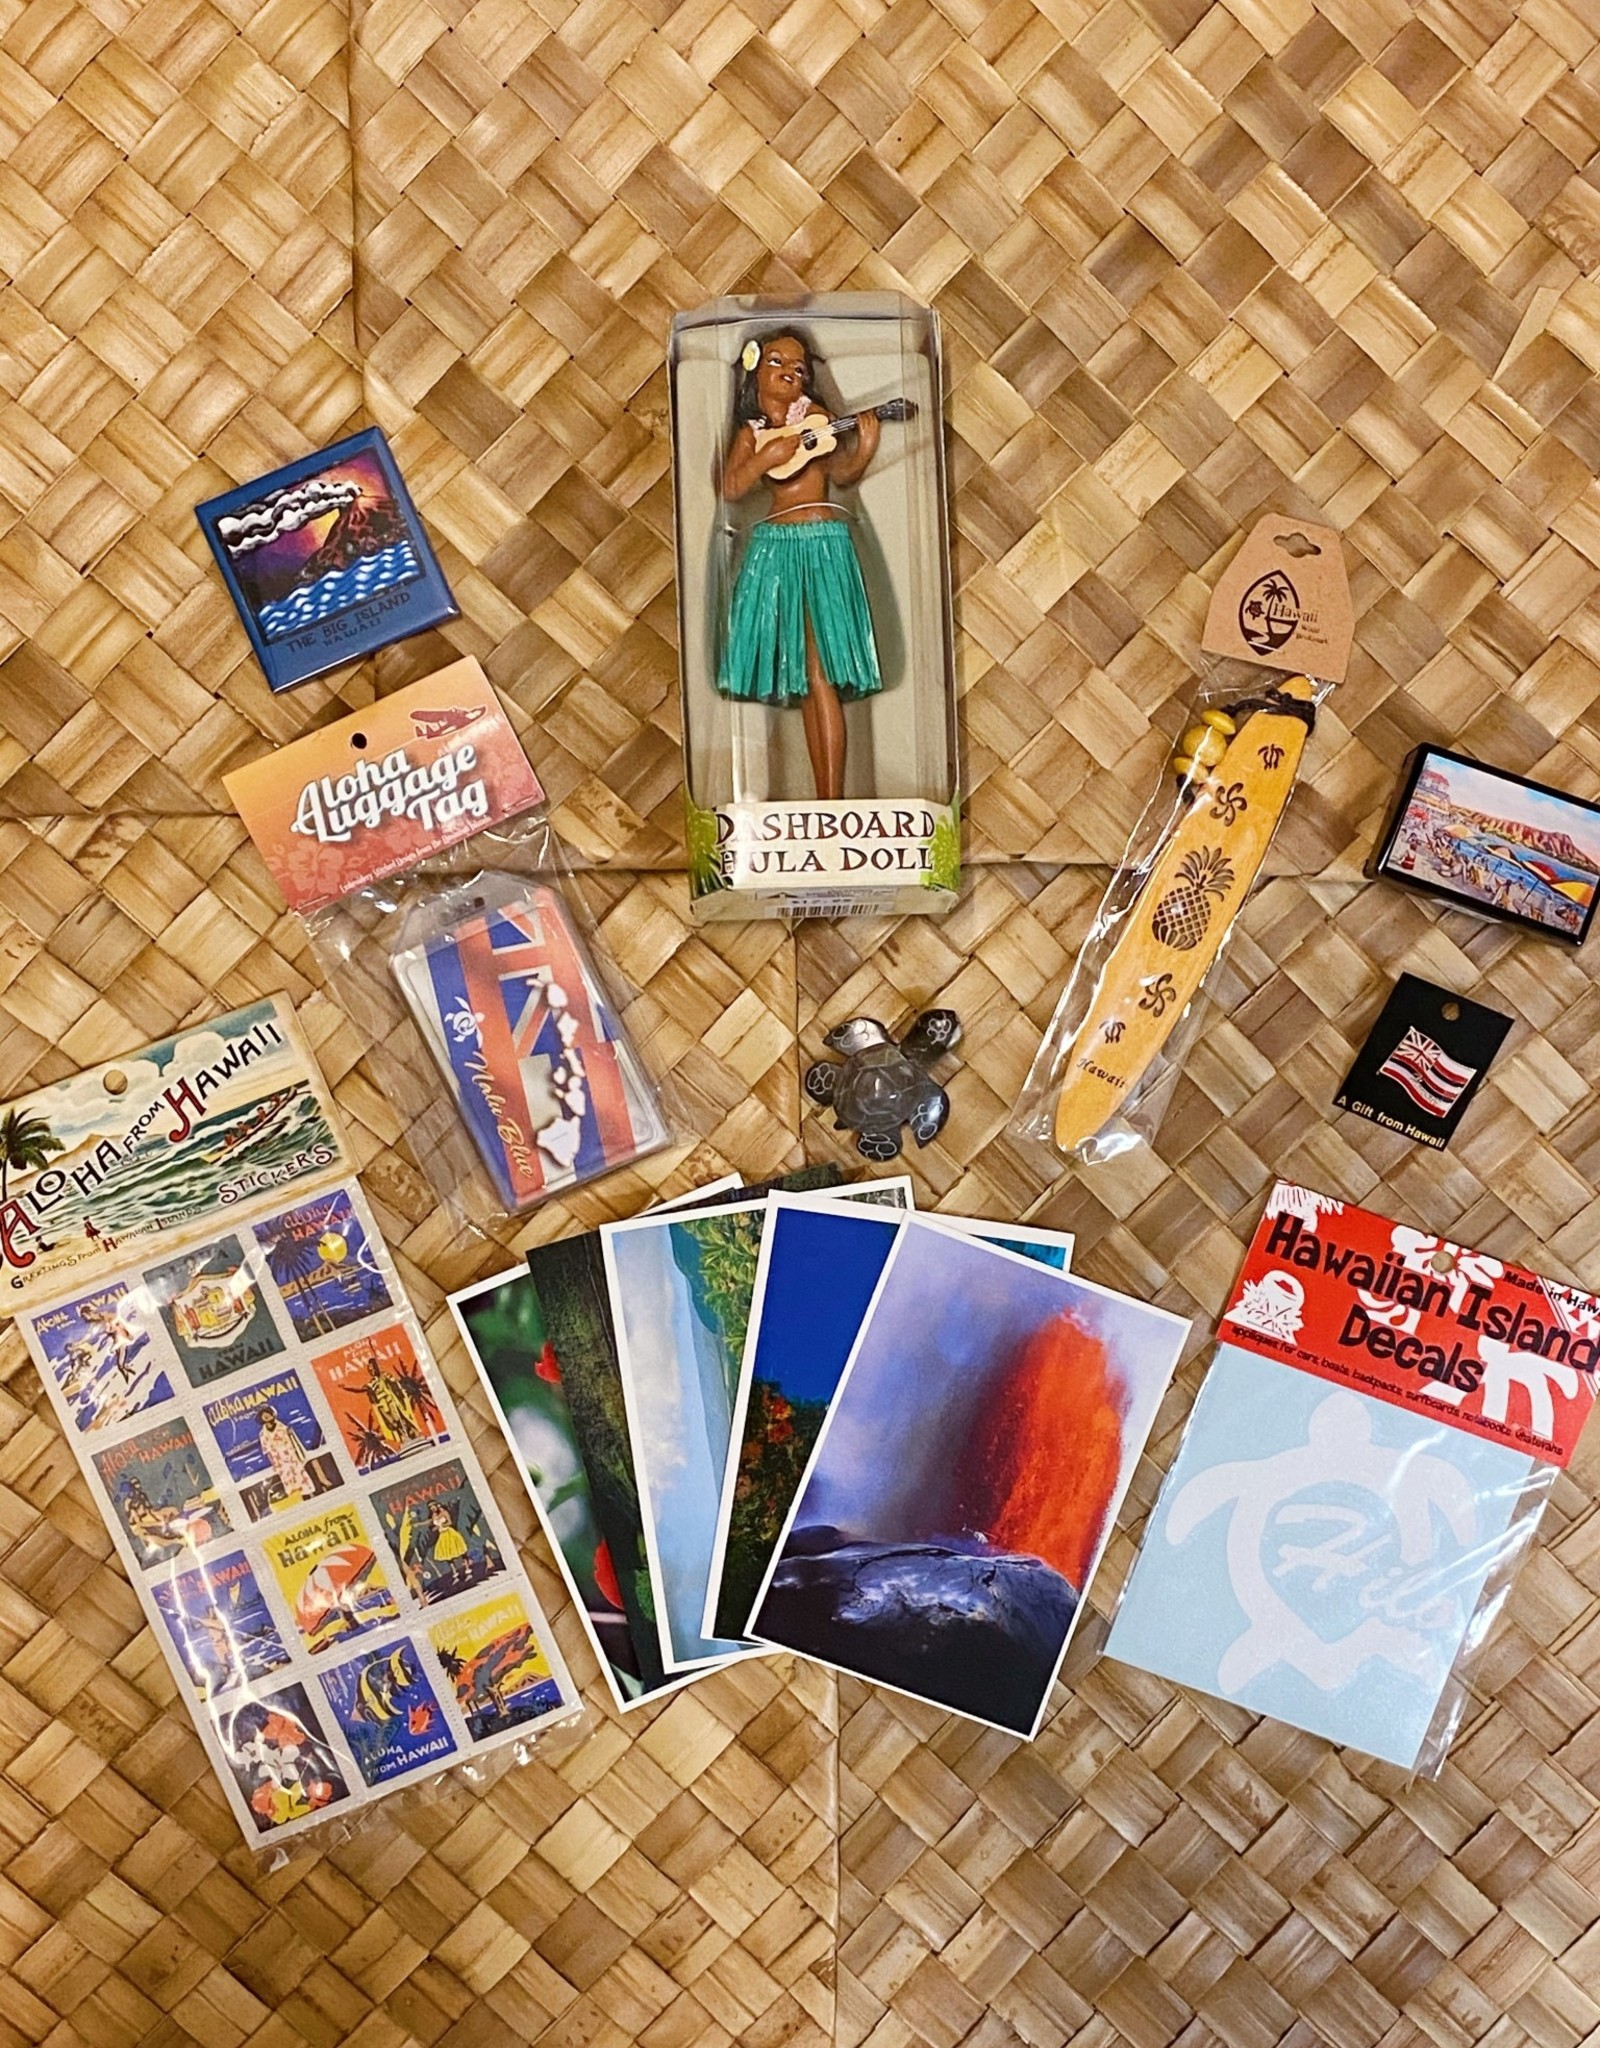 The Most Irresistible Shop in Hilo Hawaii Souvenir Gift Set